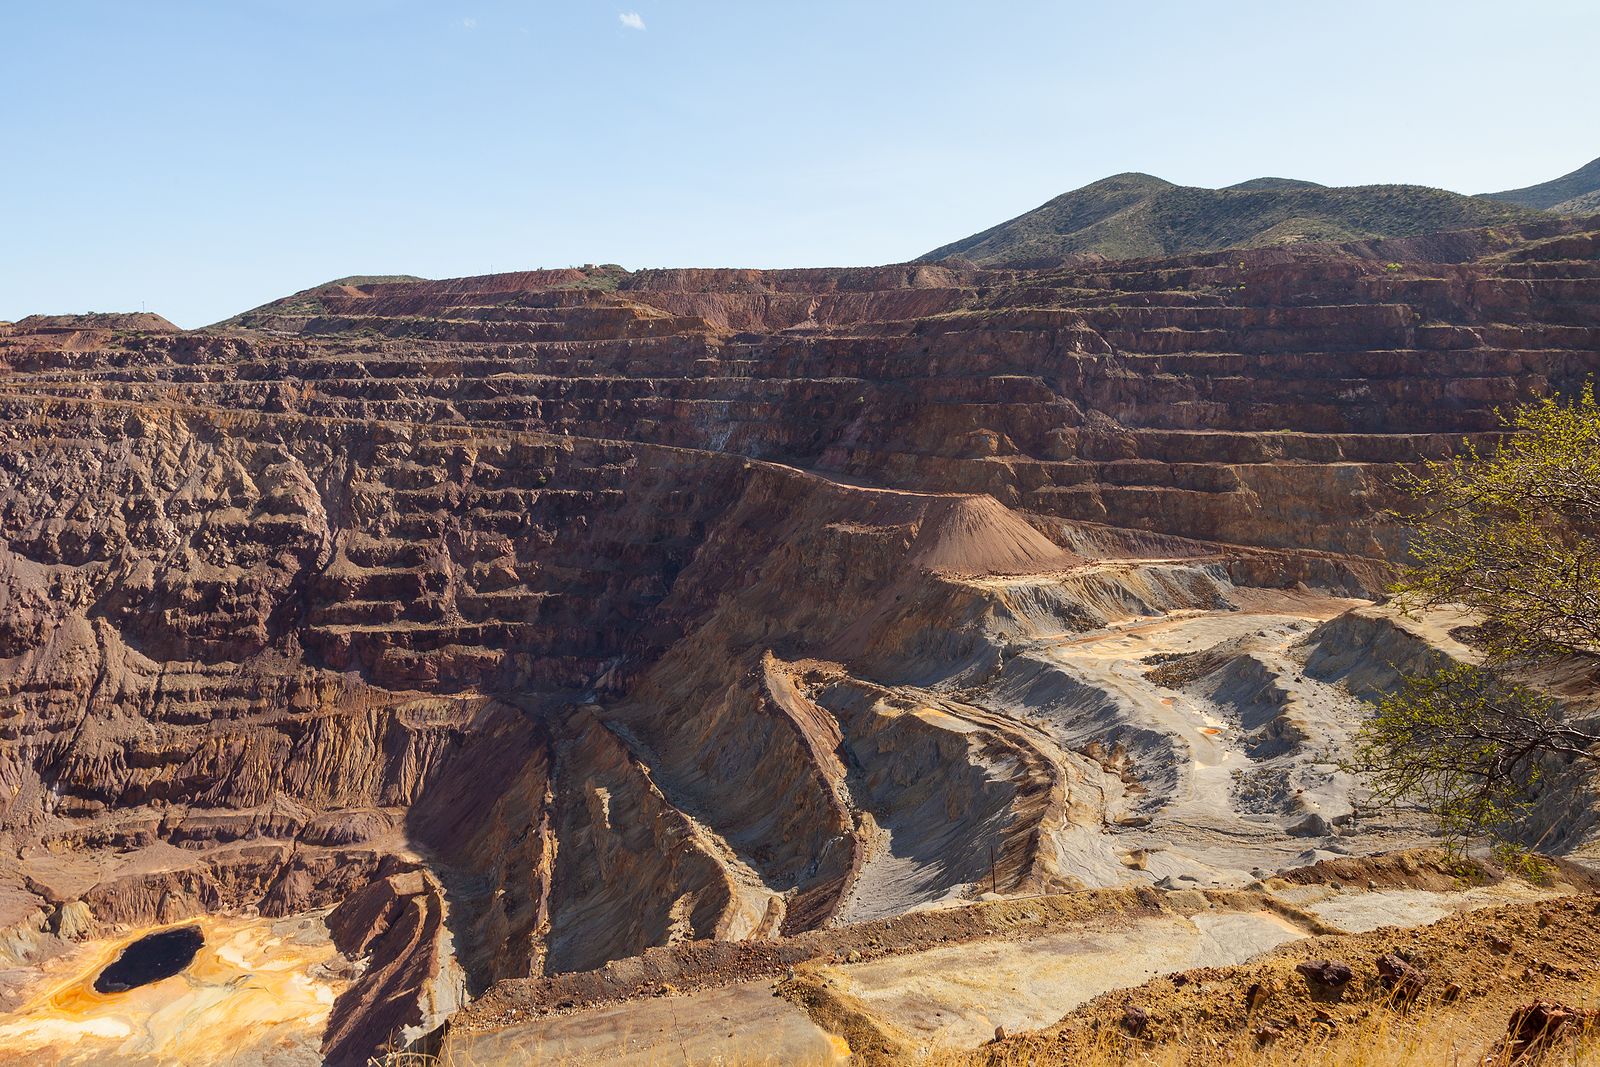 Bisbee Turquoise Mine Cool History and Facts by Southwest Originals 505-363-7150 a